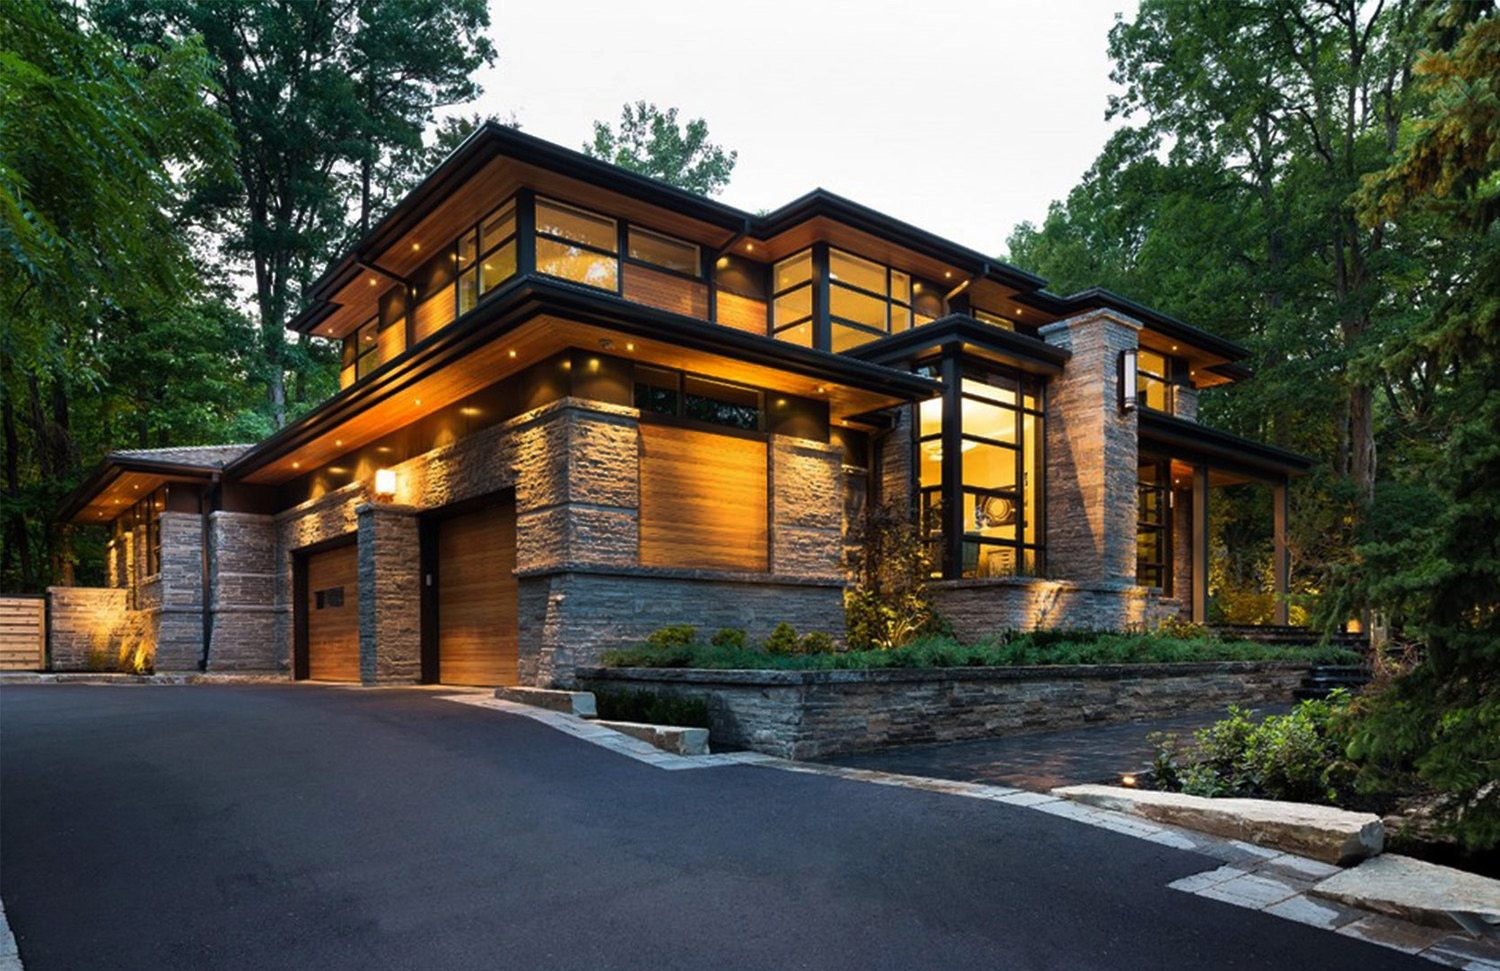 David small designs luxury homes profile ivan real estate for Luxury modern home builders